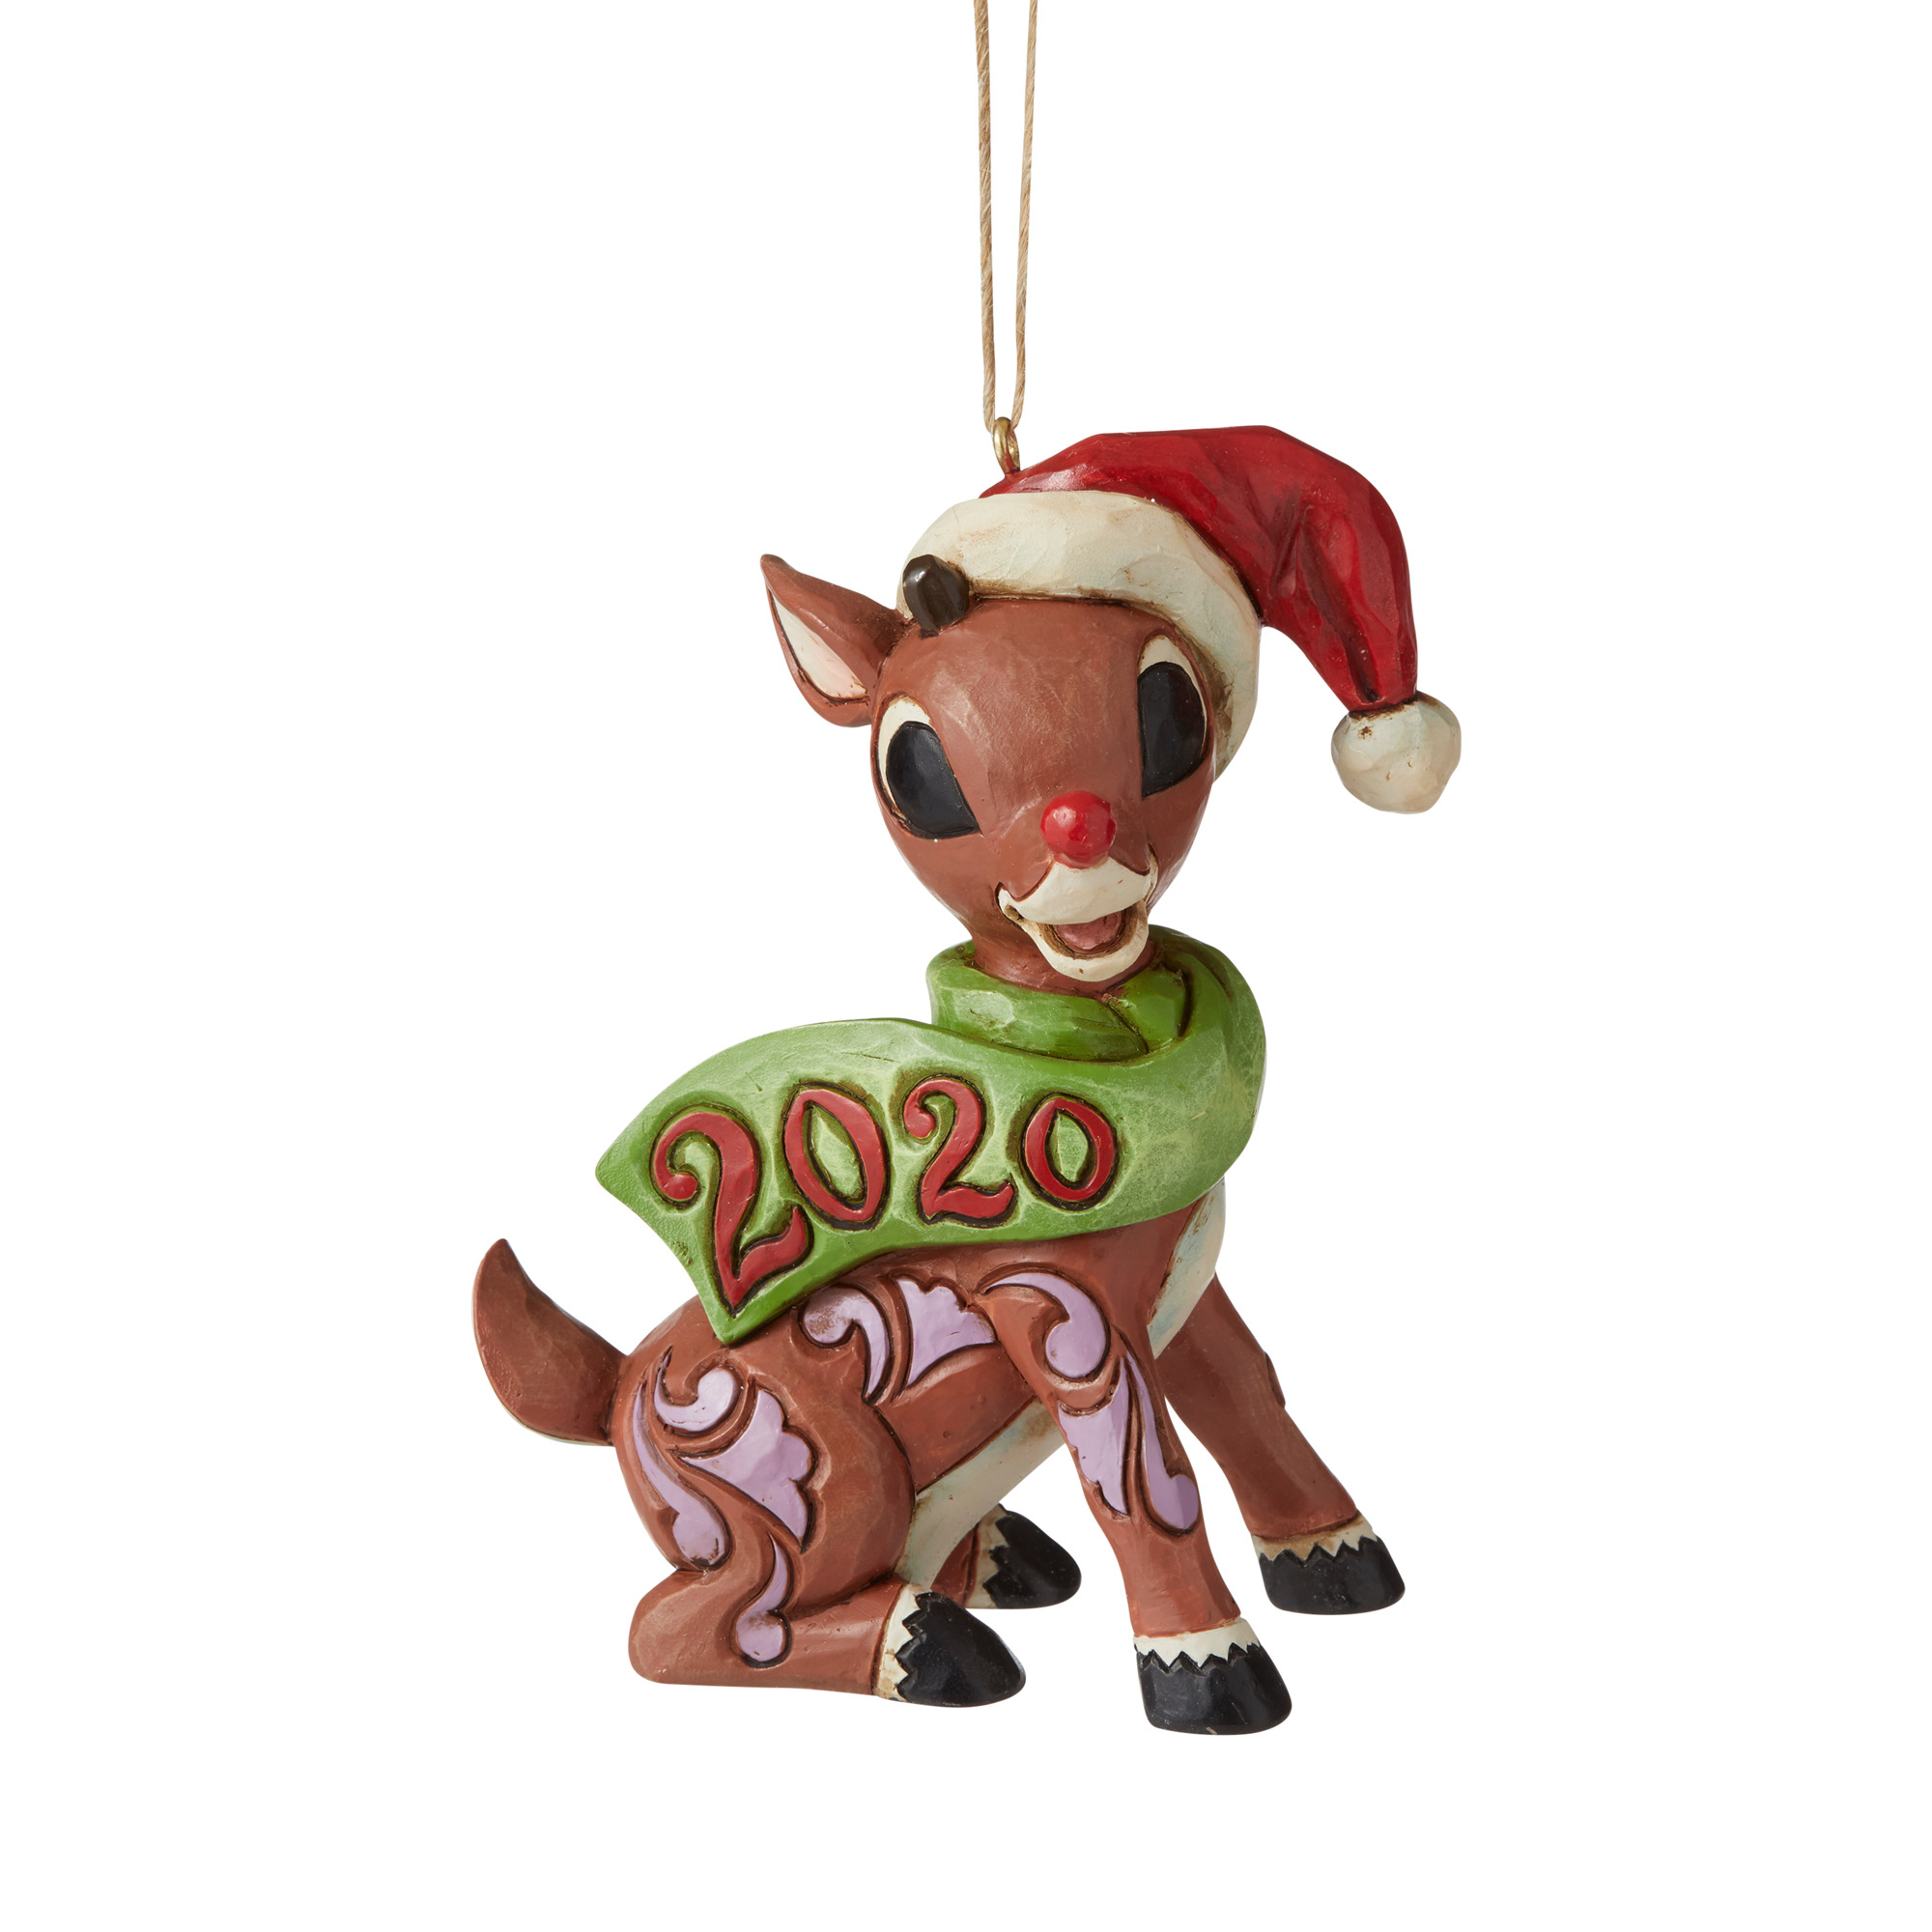 Jim Shore 2020 Christmas Ornament Jim Shore Rudolph With Candy Cane 2020 Ornament   Christmas Store